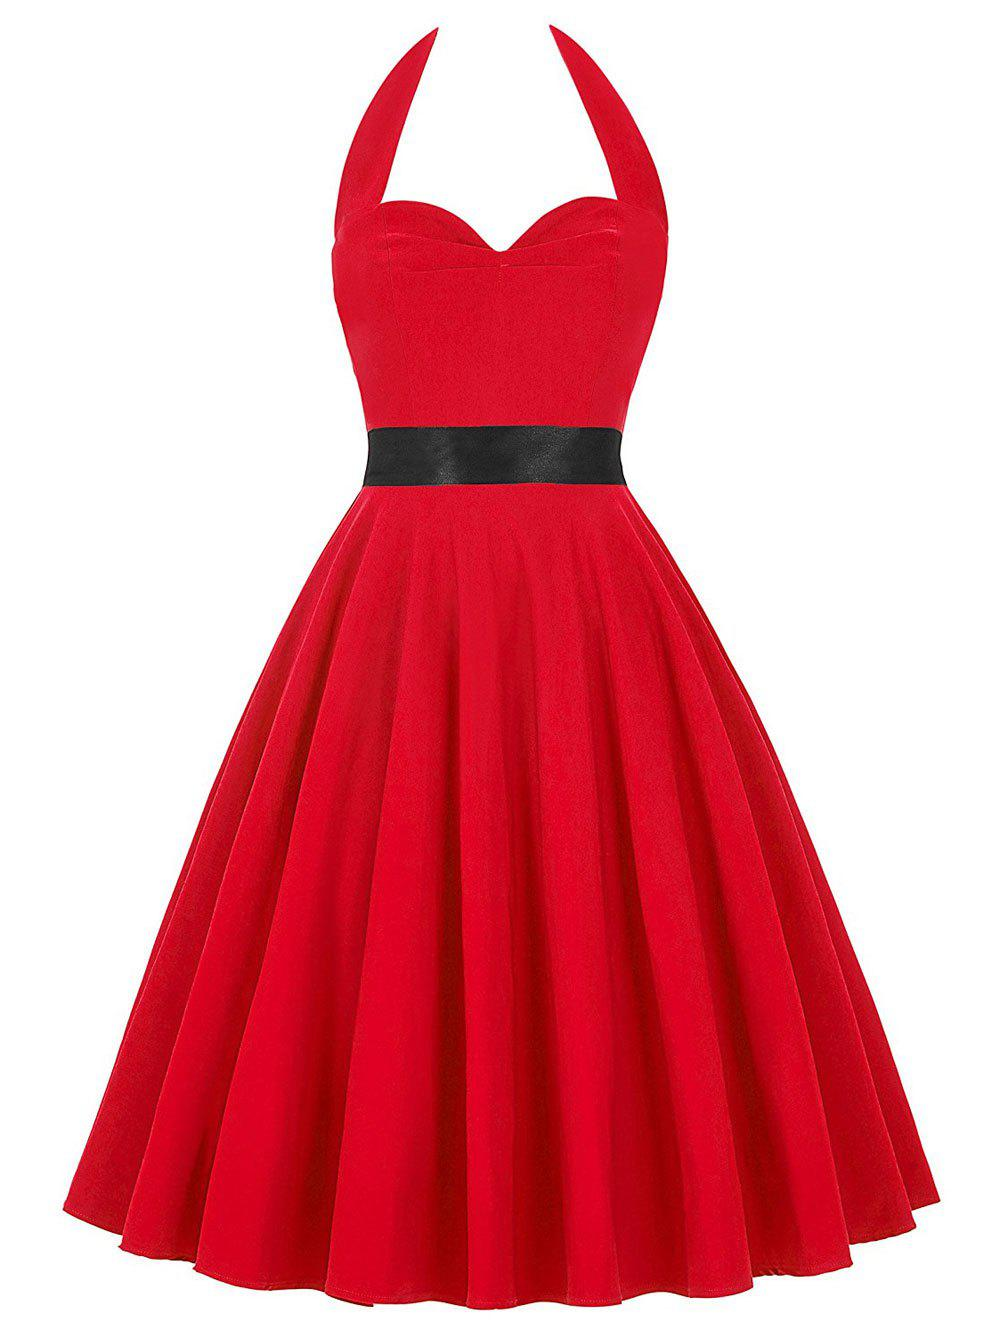 Vintage Halter Backless Lace Up Pin Up Dress - Rouge L